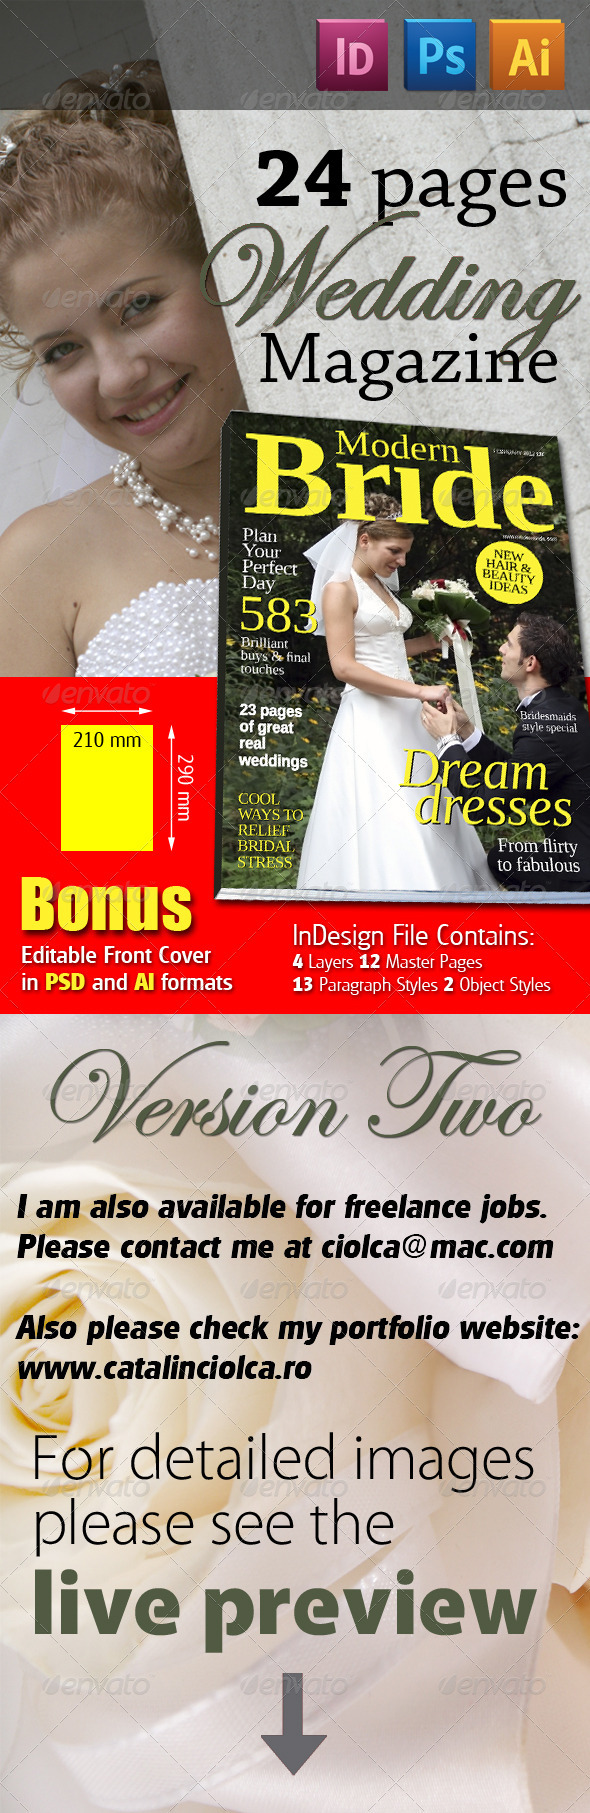 24 Pages Wedding Magazine Version Two - Magazines Print Templates